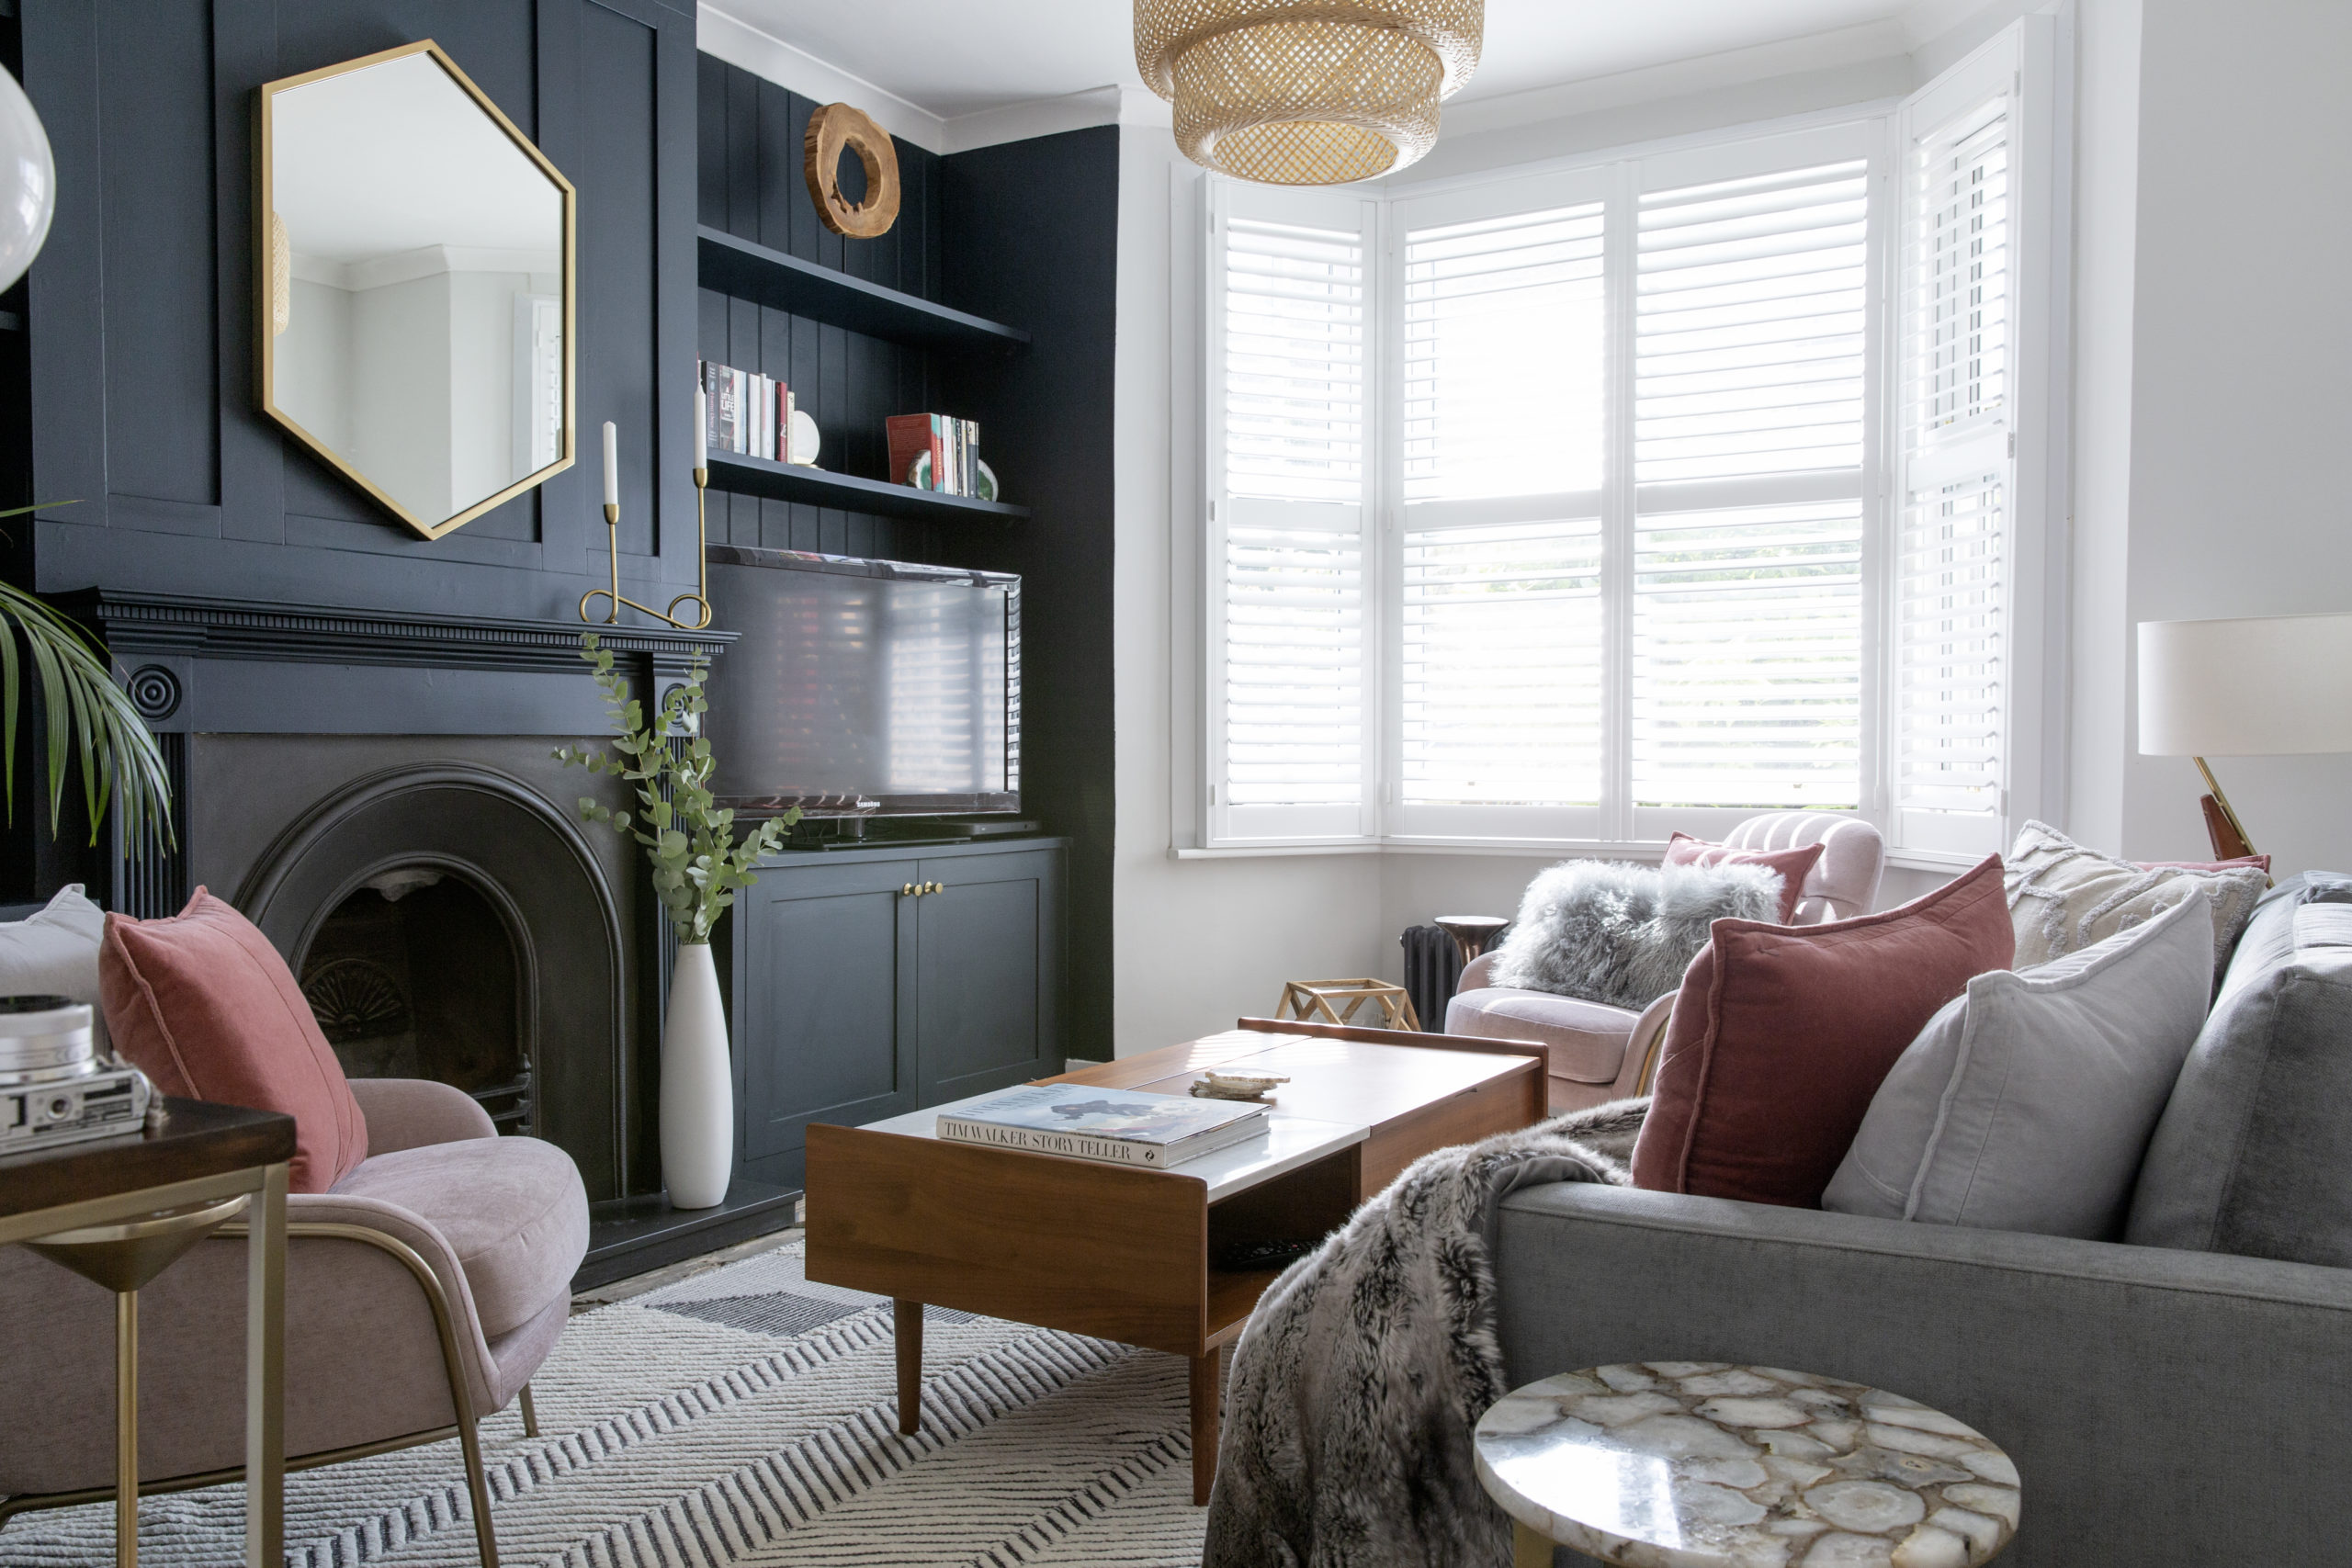 REFURBING OUR LIVING ROOM // BEFORE AND AFTER HOME TRANSFORMATION IN PARTNERSHIP WITH WEST ELM